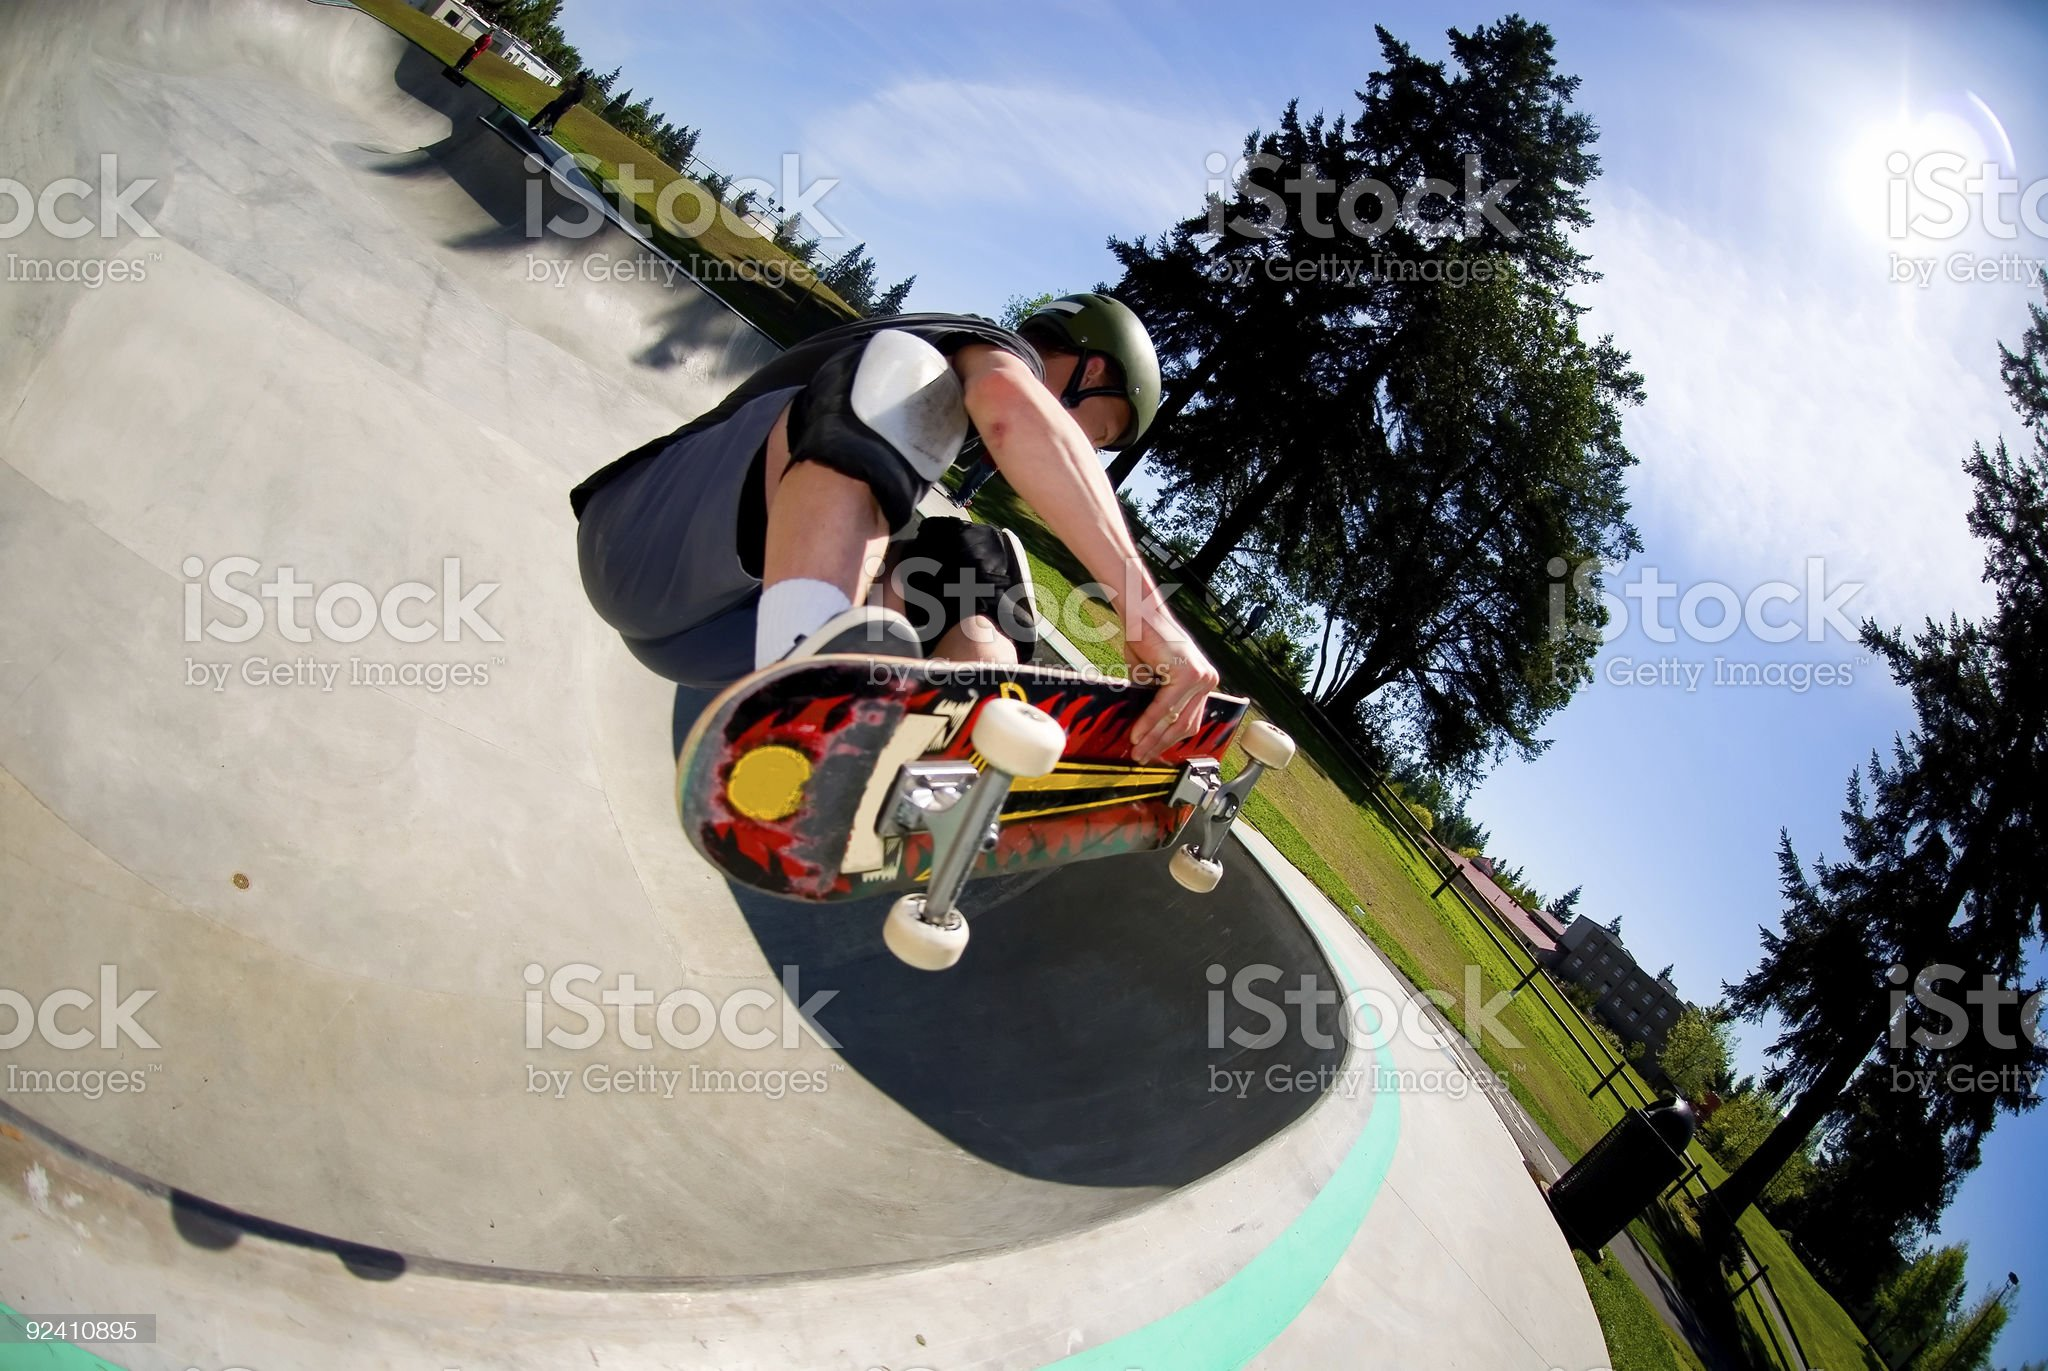 Crossroads Park - Fronside Air royalty-free stock photo